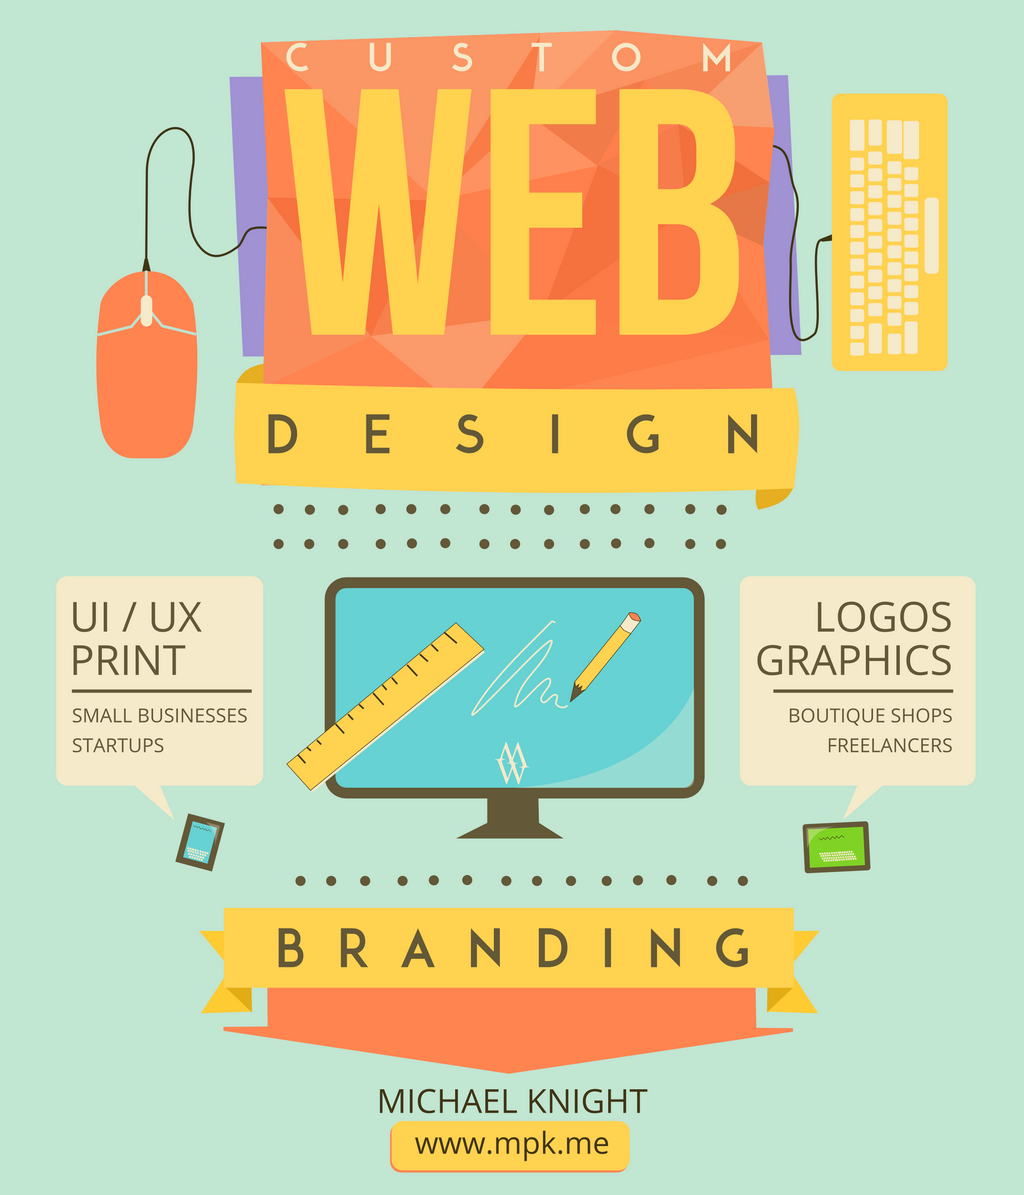 Web Design and Branding Flyer by KnightRider71 on DeviantArt